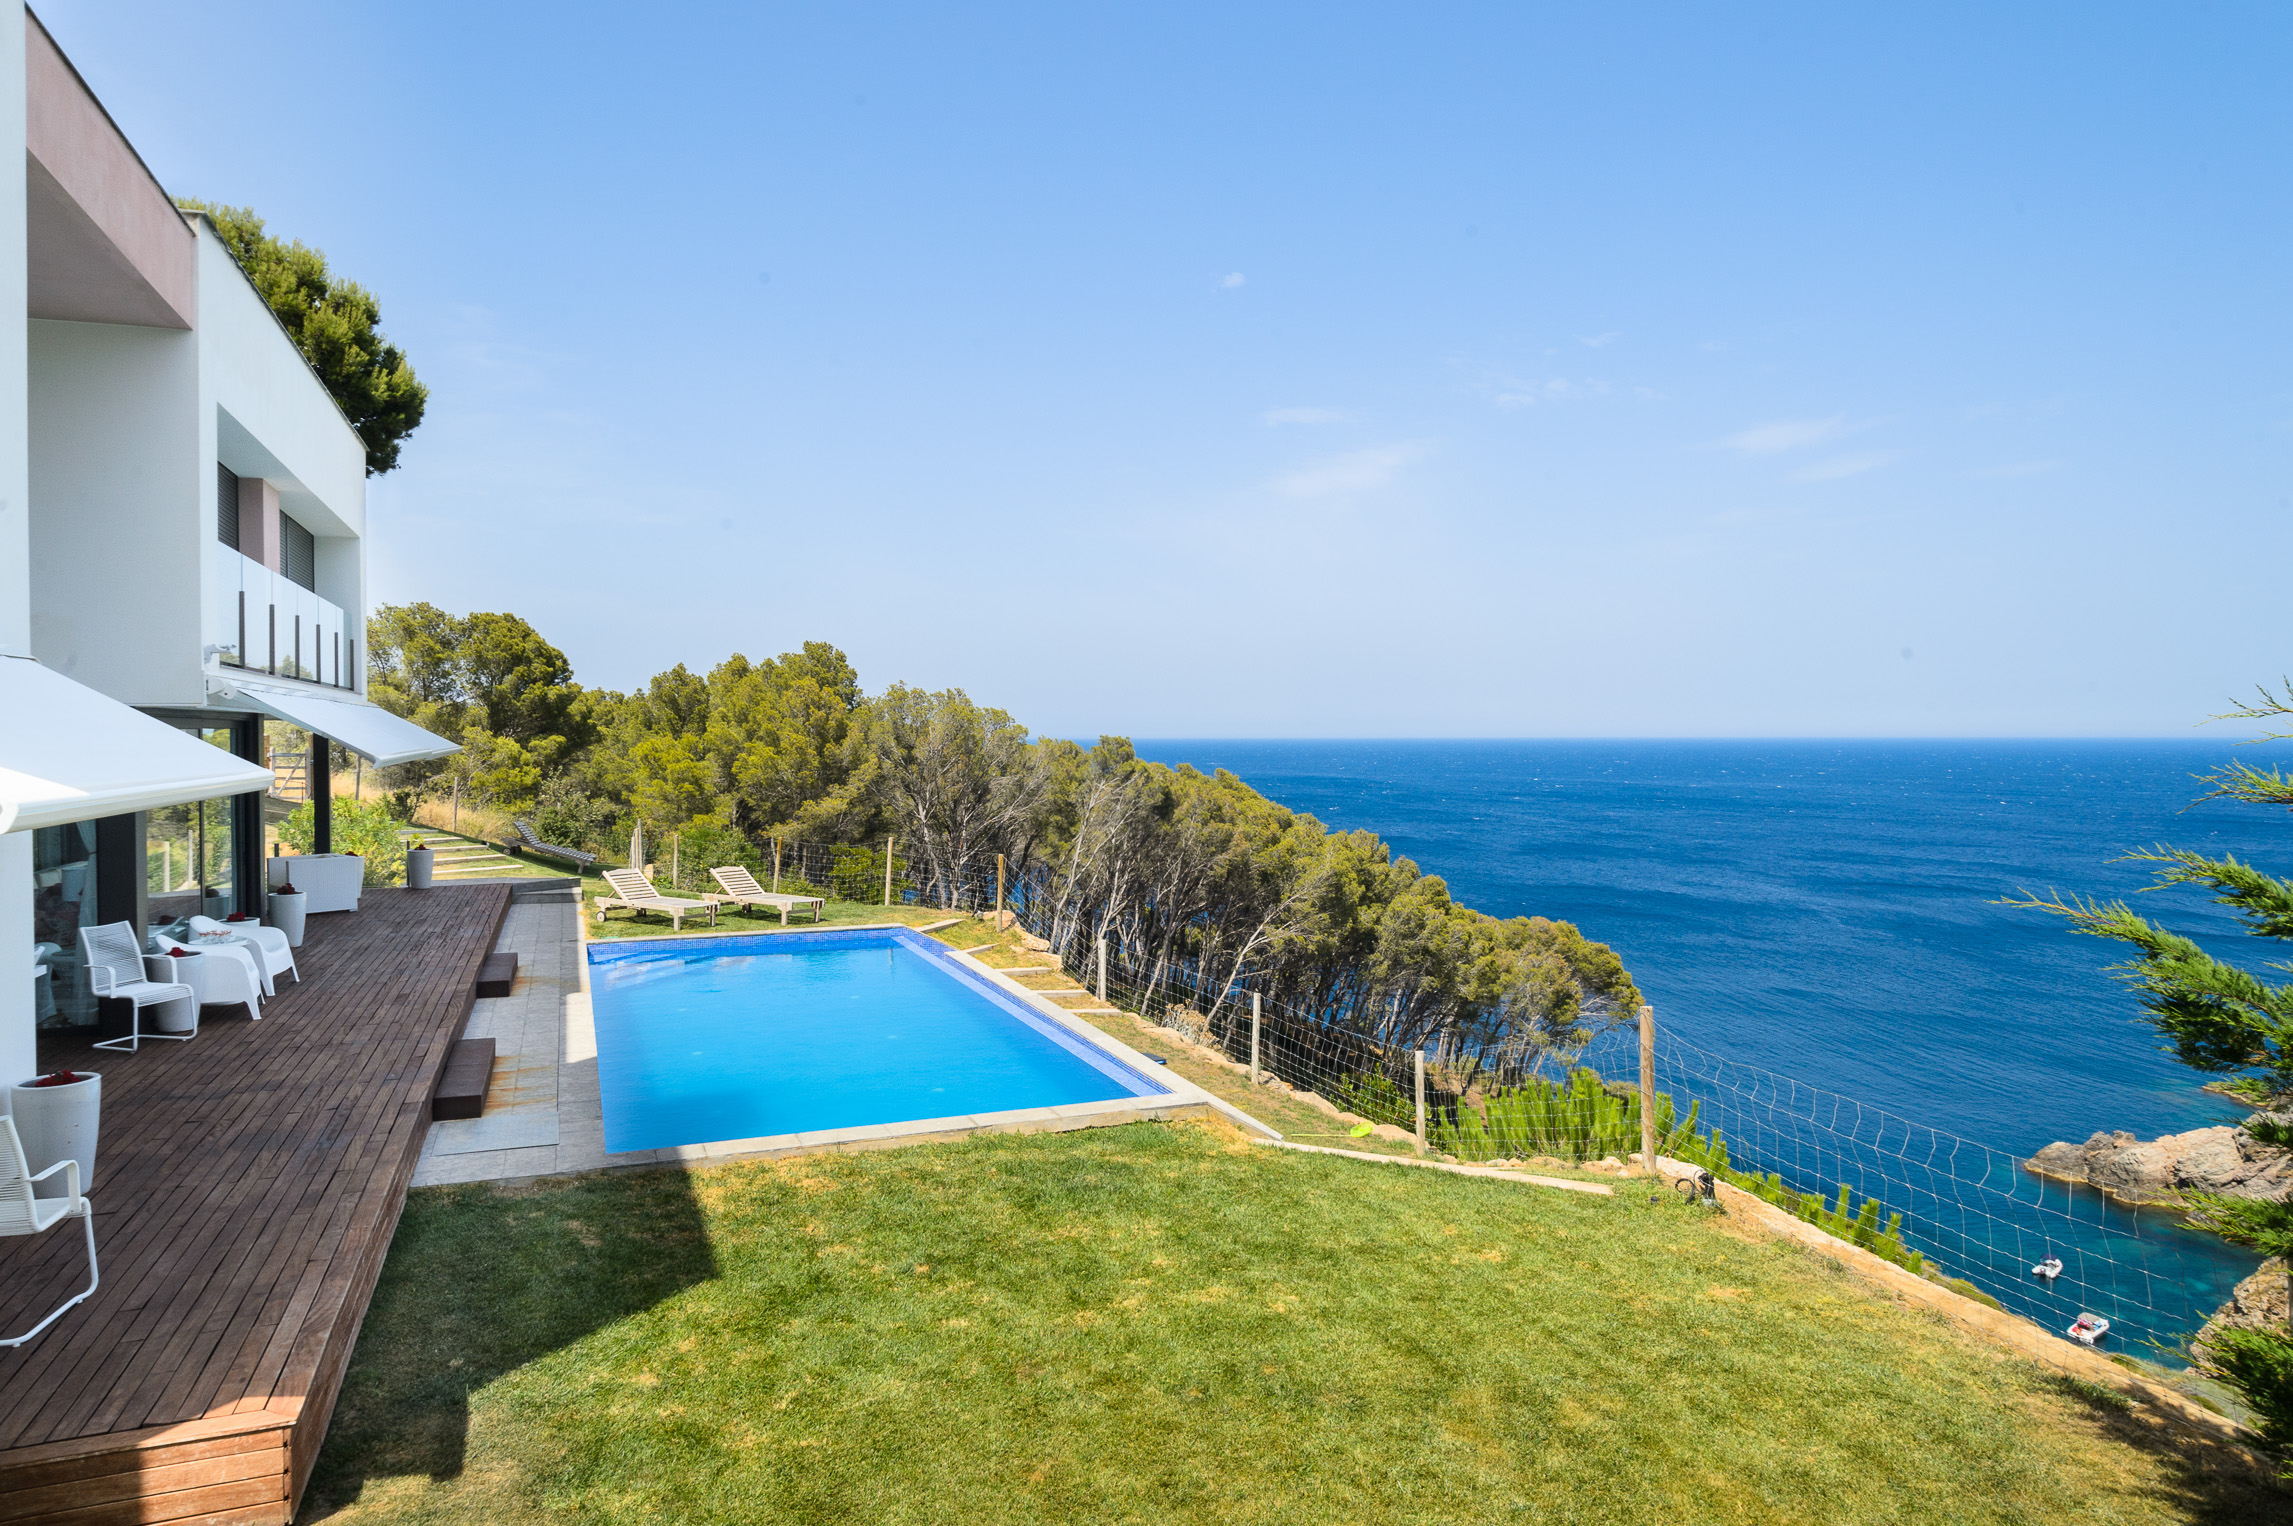 Property For Sale at Wonderful house in front of the sea